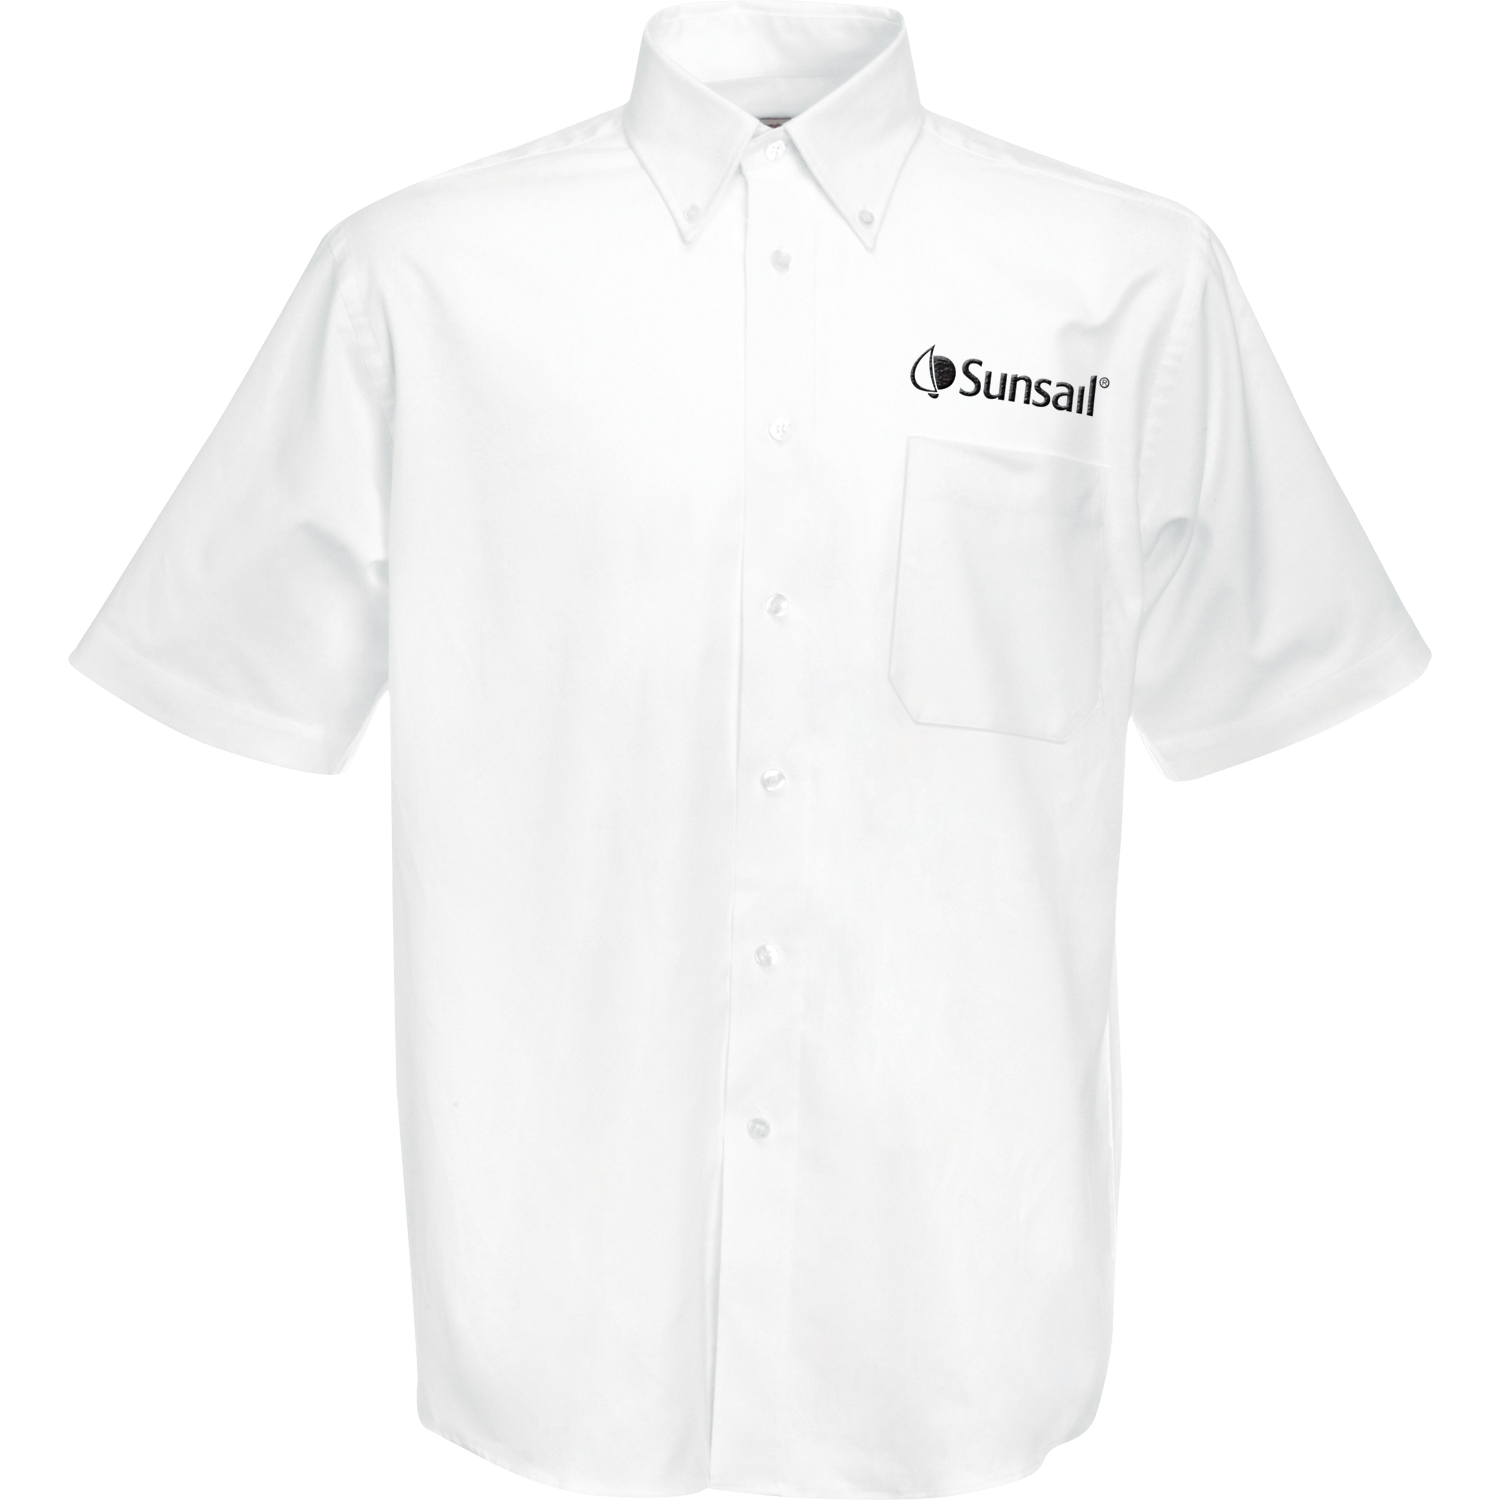 Fruit of the Loom Premium Short Sleeve Oxford Shirt